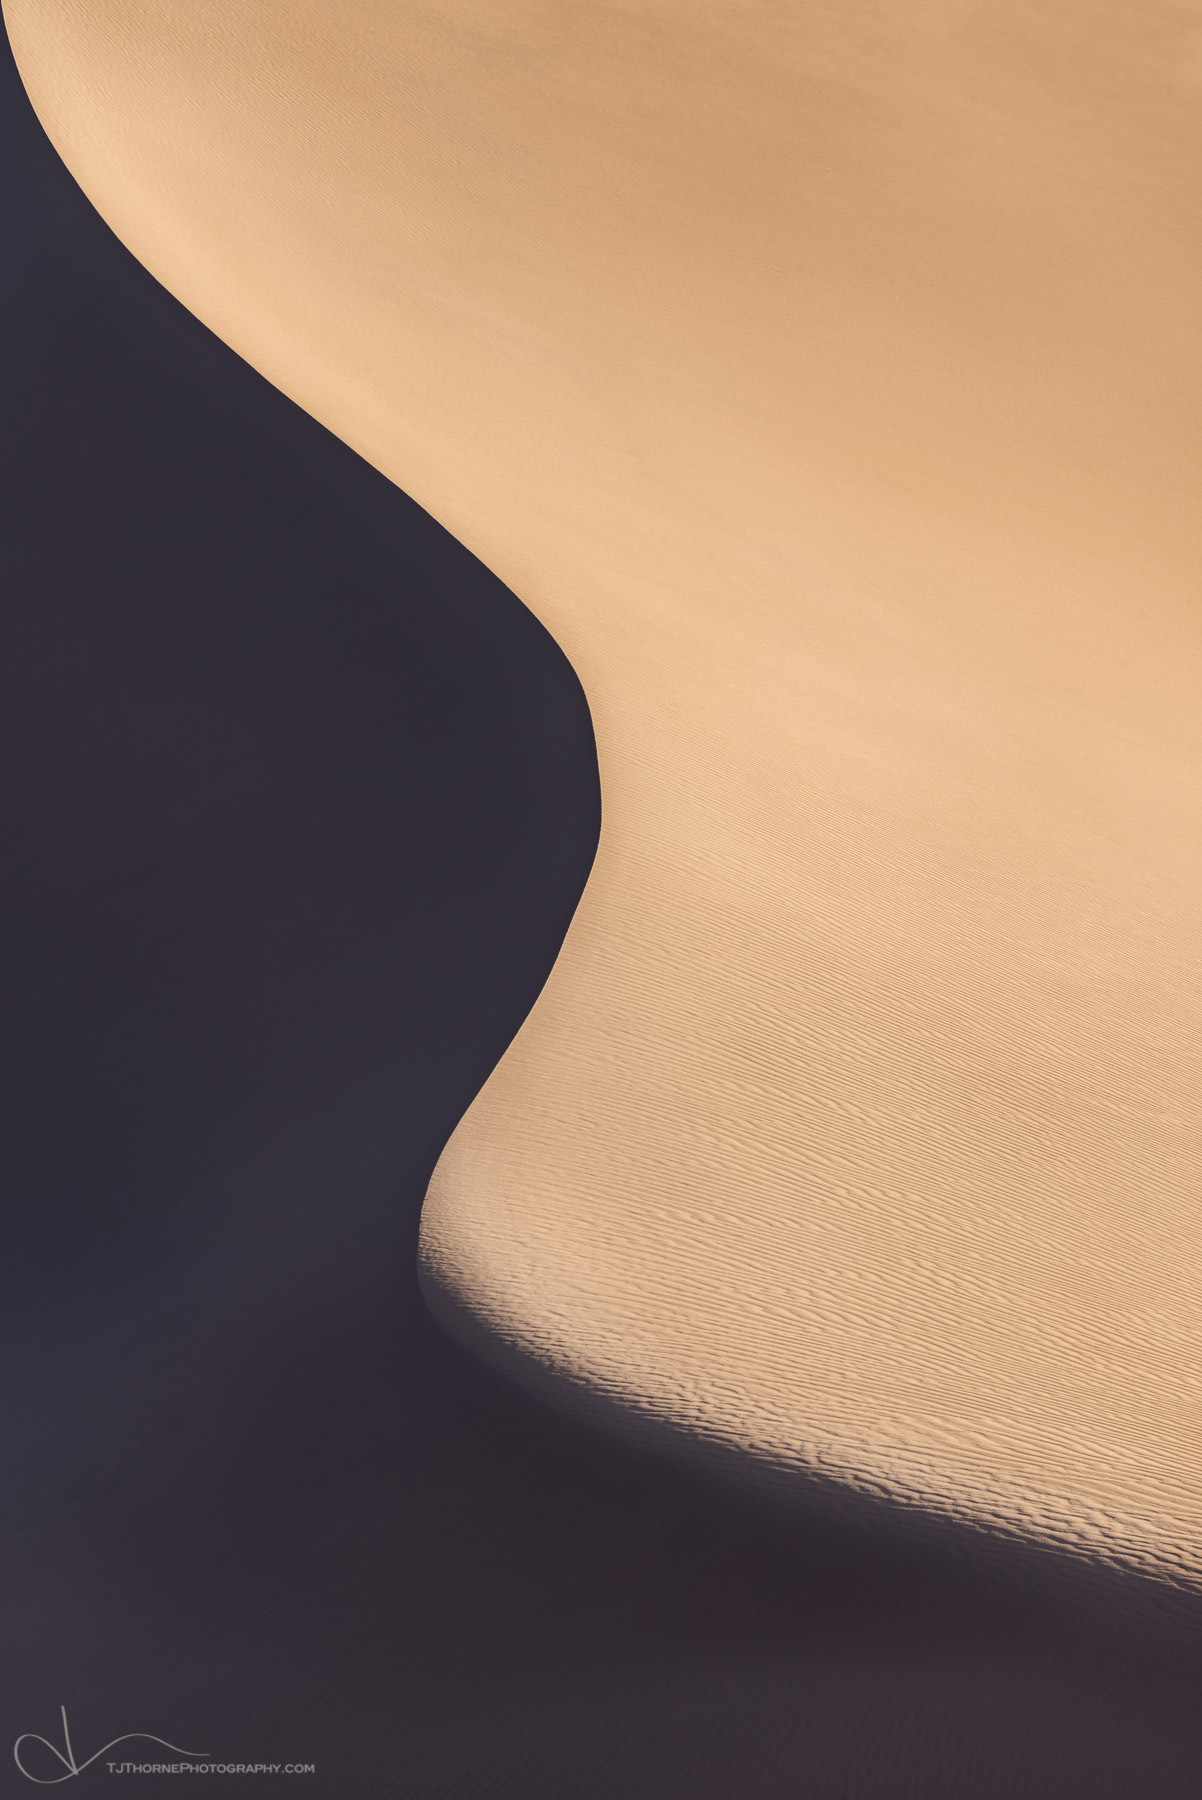 sand, dune, light, shadow, california, death valley, national park, photo